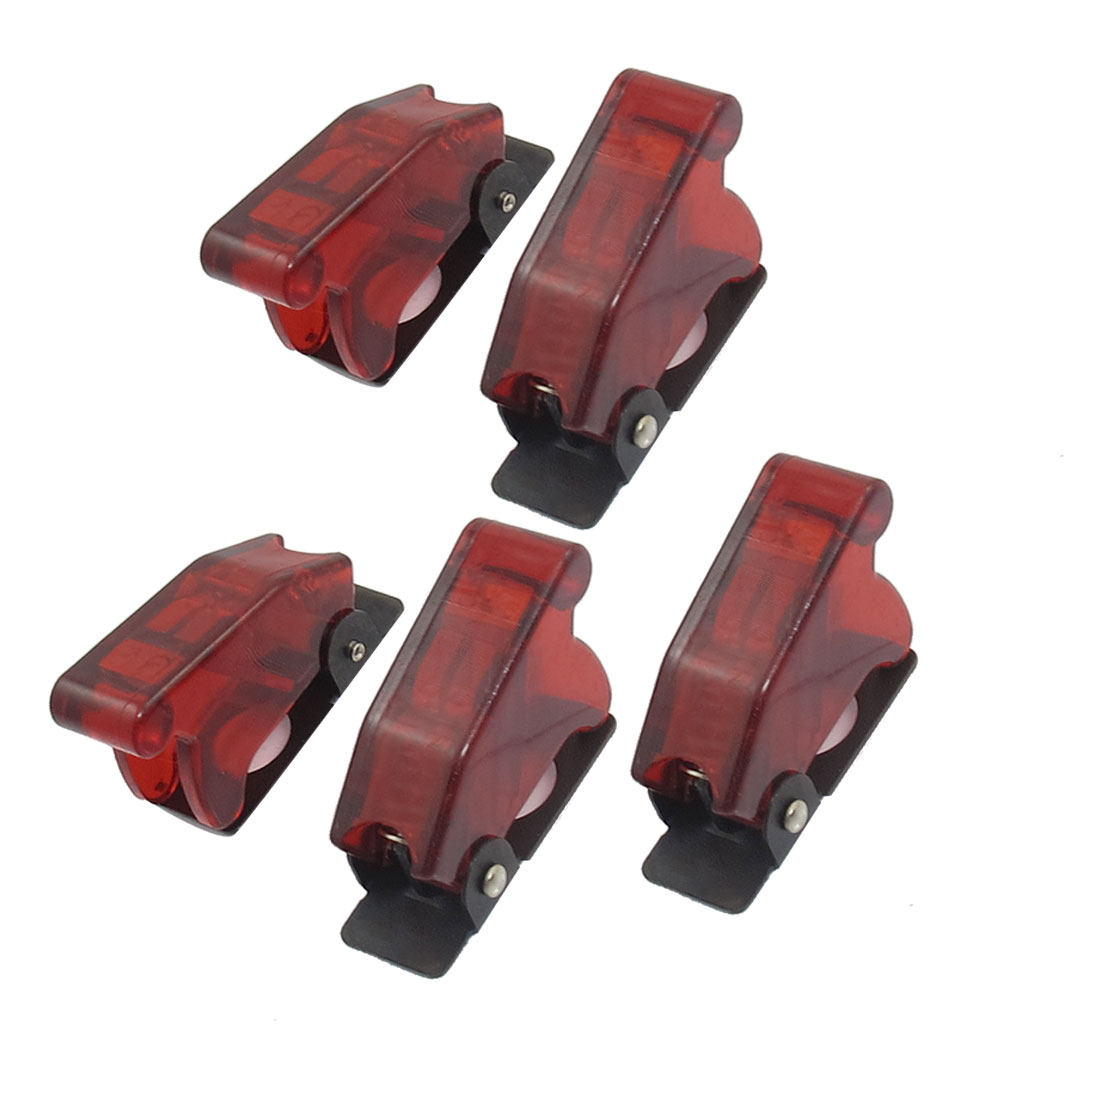 5 Pcs 12mm Mount Dia. Red Safety Flip Cover for Toggle Switch